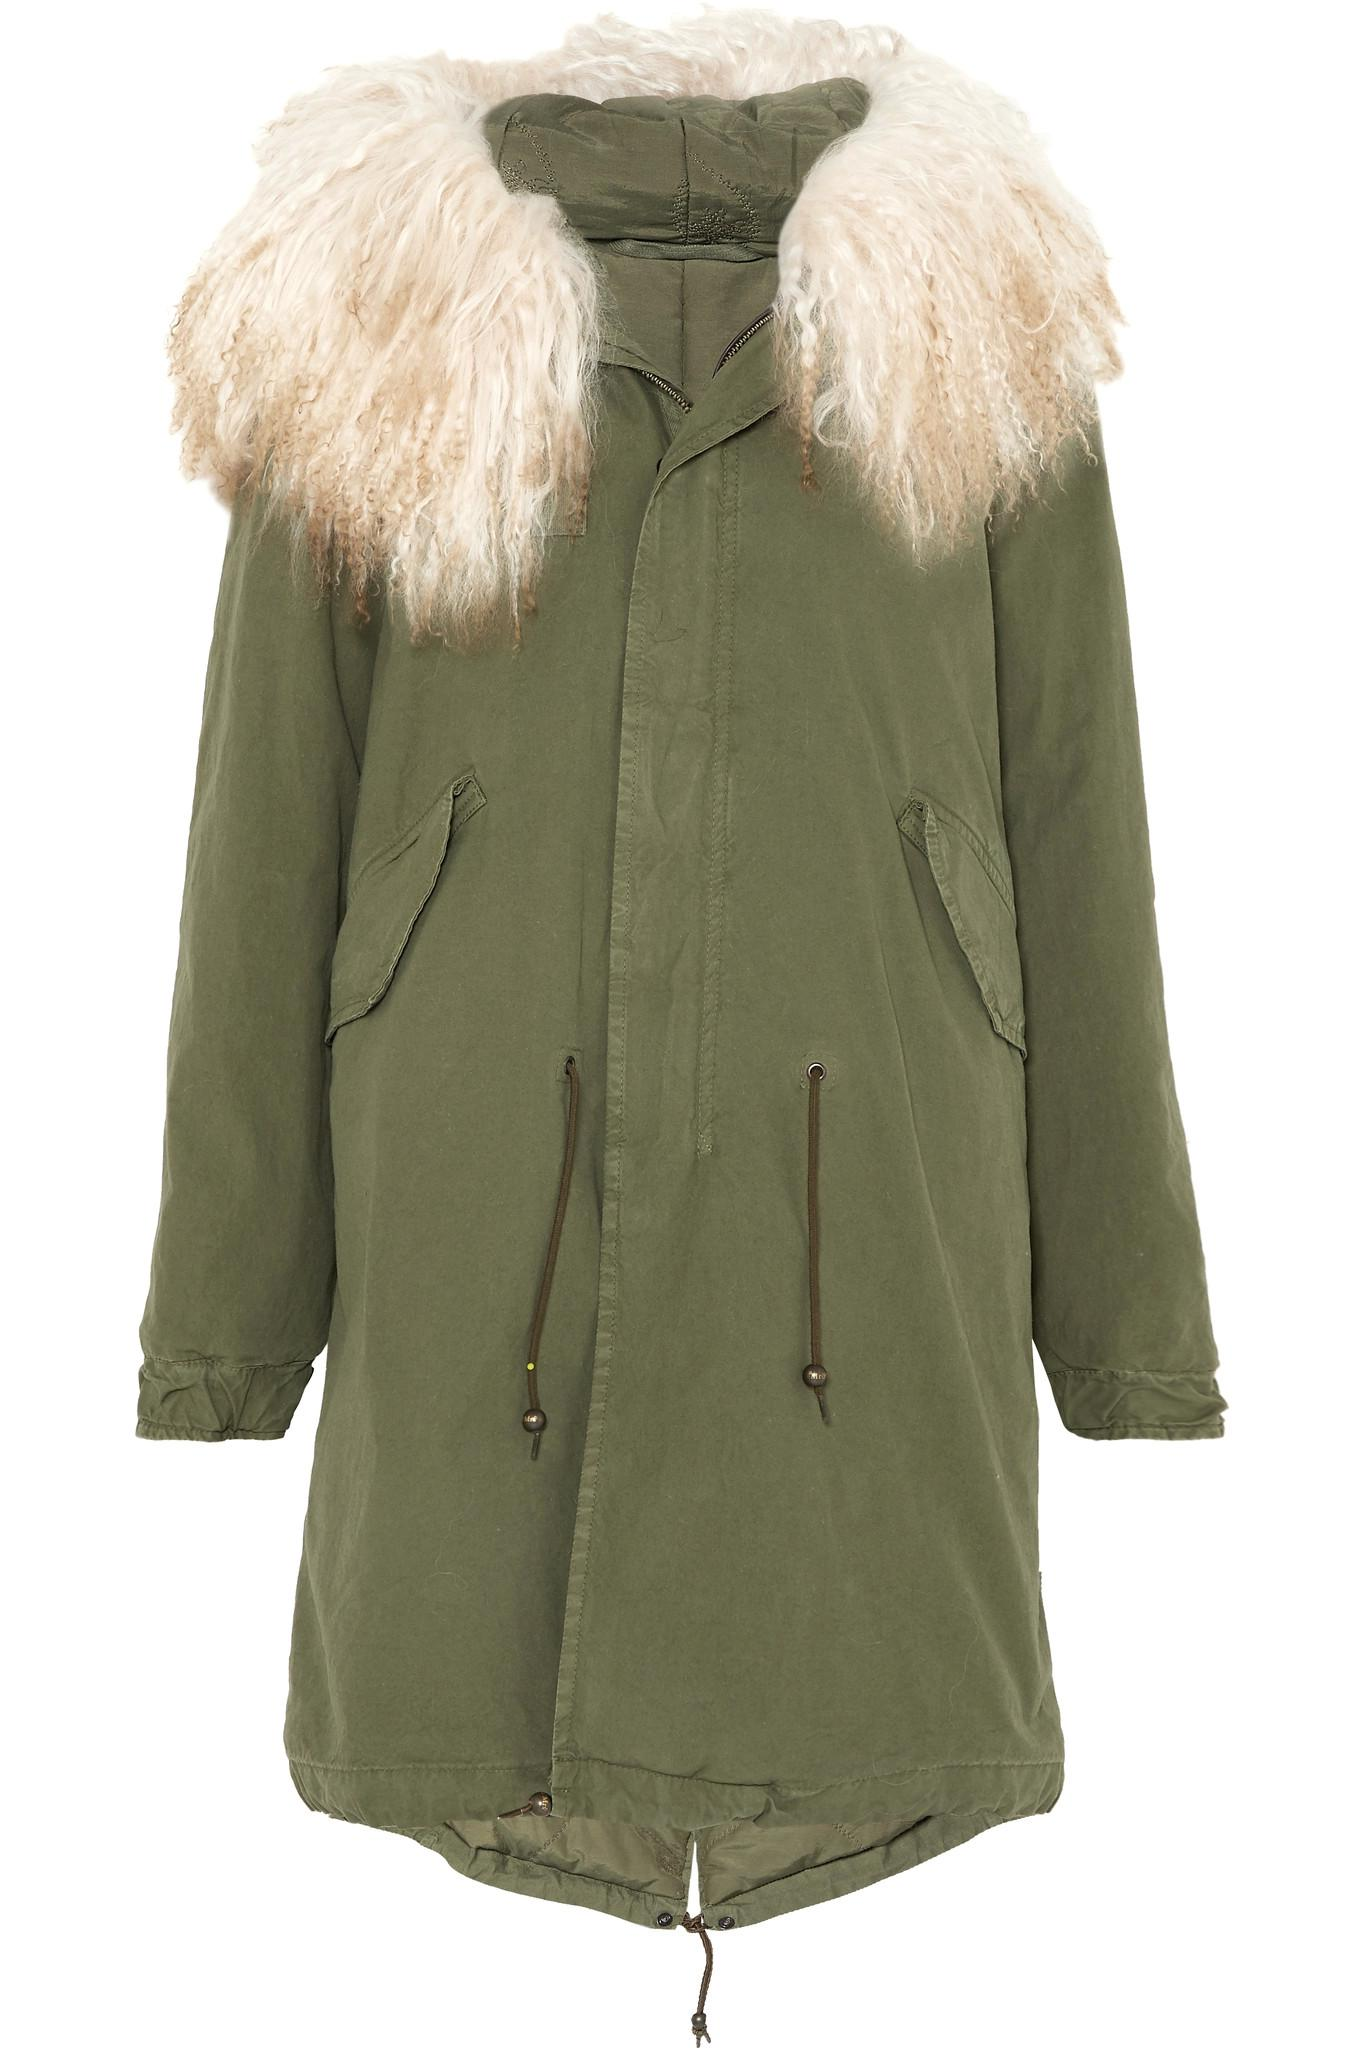 Wiki Online Hooded Shearling-trimmed Cotton-canvas Parka - Green Mr & Mrs Italy Best Prices Sale Online FXsaRg